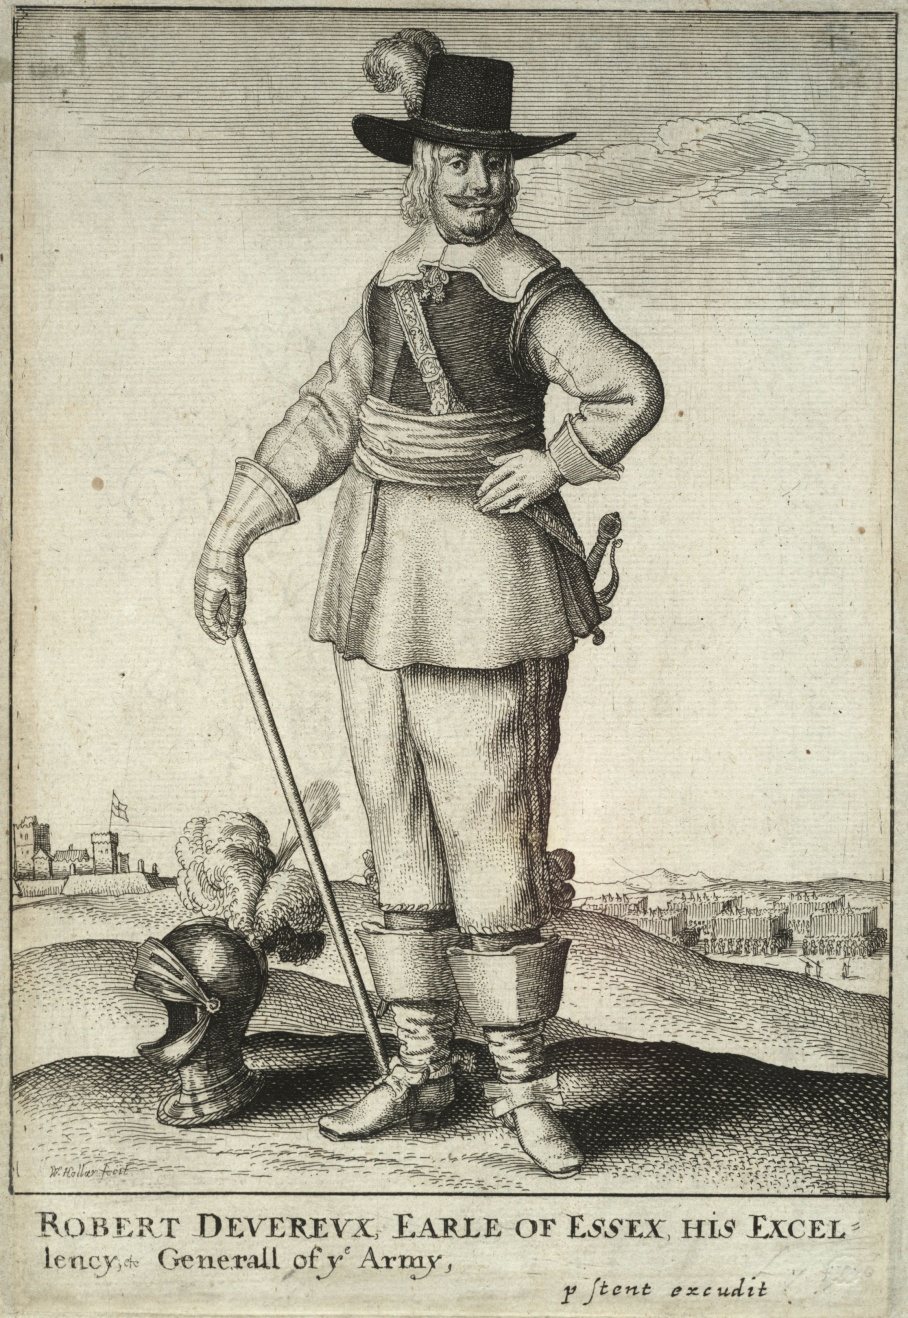 Wenceslas_Hollar_-_Earl_of_Essex_on_foot_(State_2)_cropped